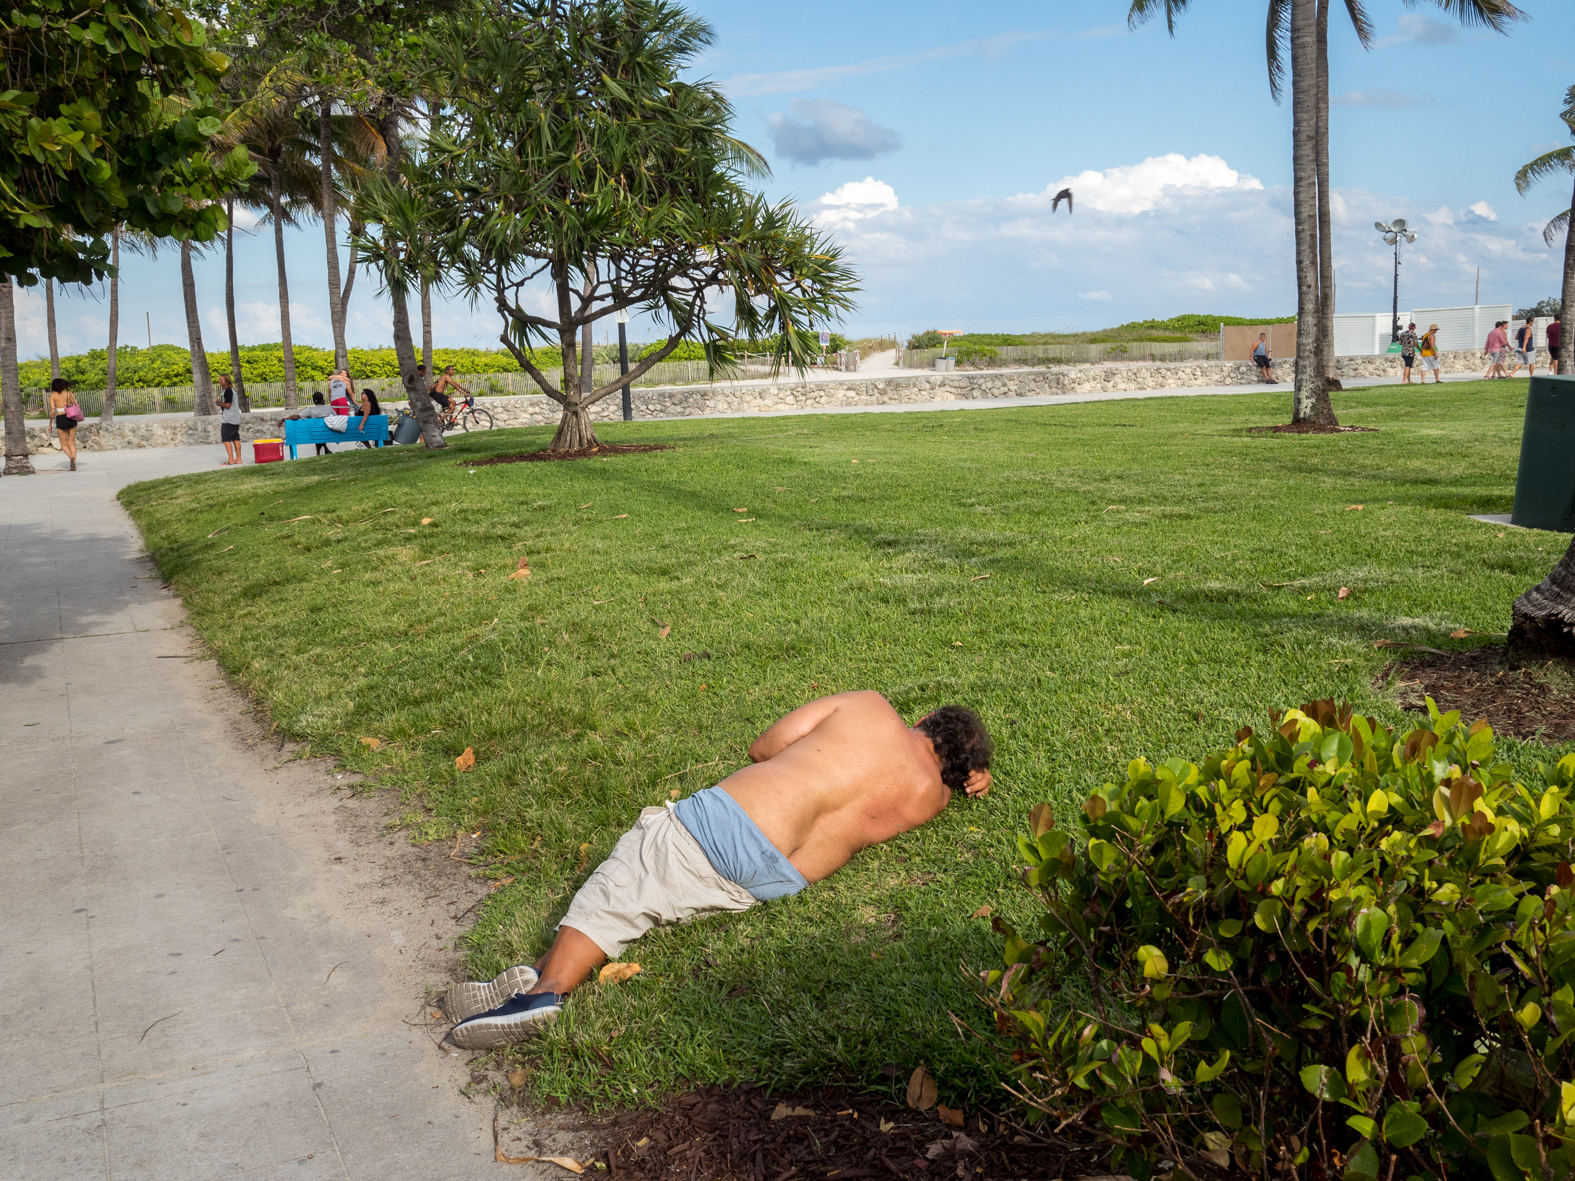 A man rests on the grass, South Beach, Miami.Miami is a seaport city on the Atlantic Ocean in south Florida. Miami's metro area is the eighth-most populous and fourth-largest urban area in the U.S., with a population of around 5.5 million.Miami is a major center, and a leader in finance, commerce, culture, media, entertainment, the arts, and international trade. In 2008, Forbes magazine ranked Miami {quote}America's Cleanest City{quote}, for its year-round good air quality, vast green spaces, clean drinking water, clean streets, and city-wide recycling programs. According to a 2009 UBS study of 73 world cities, Miami was ranked as the richest city in the United States, and the world's fifth-richest city in terms of purchasing power. Miami is nicknamed the {quote}Capital of Latin America{quote}, is the second largest U.S. city with a Spanish-speaking majority, and the largest city with a Cuban-American plurality.©Peter Dench/Getty Images Reportage